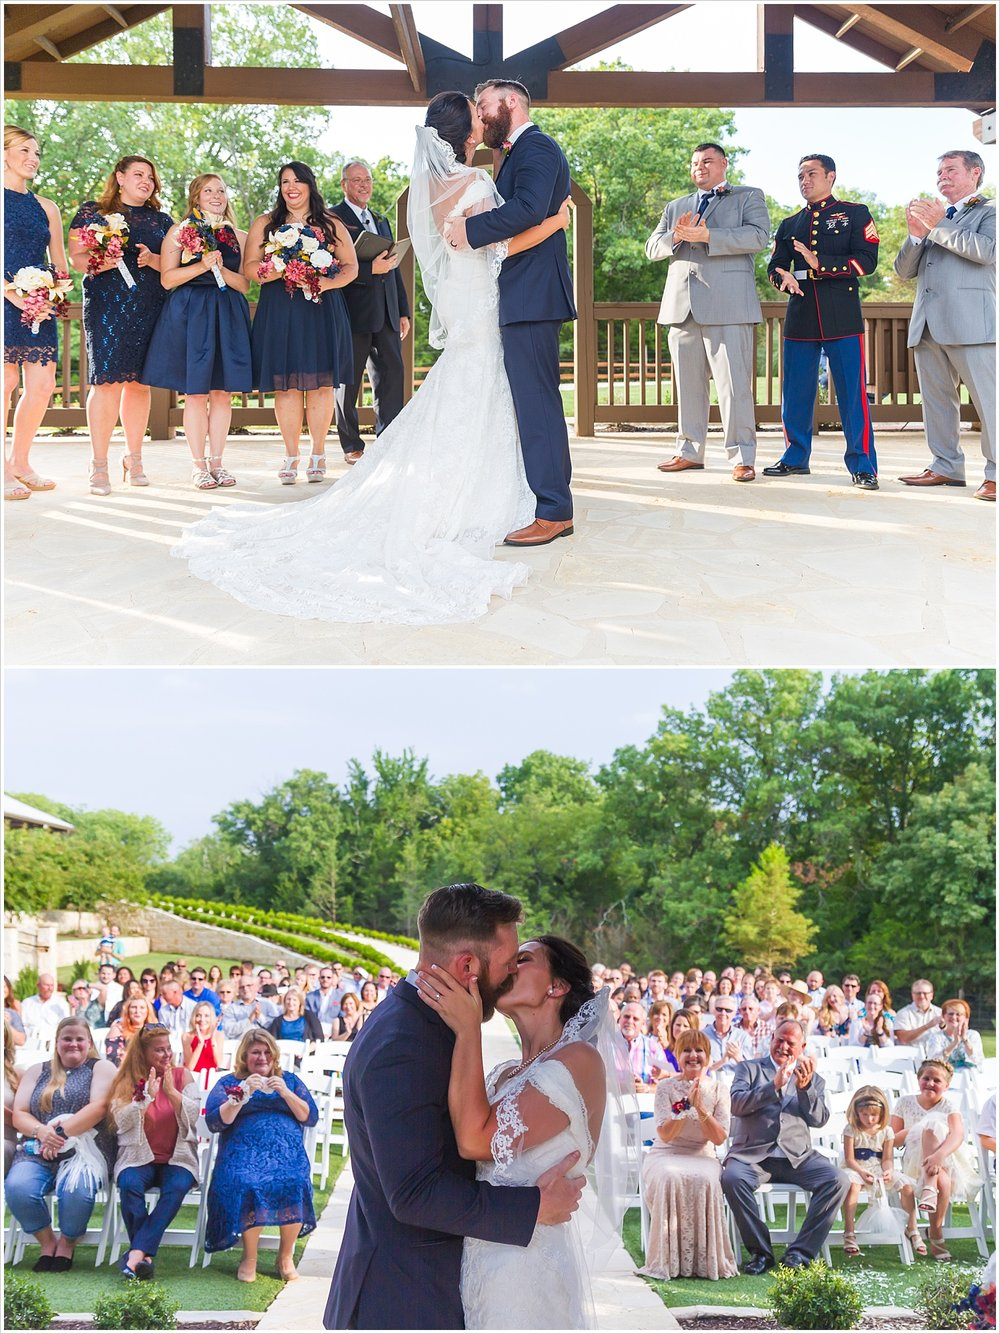 Bride and groom kiss at altar with audience in background, summer blush and navy wedding at Stone Hall at The Springs in McKinney, Texas, Jason & Melaina Photography, www.jasonandmelaina.com